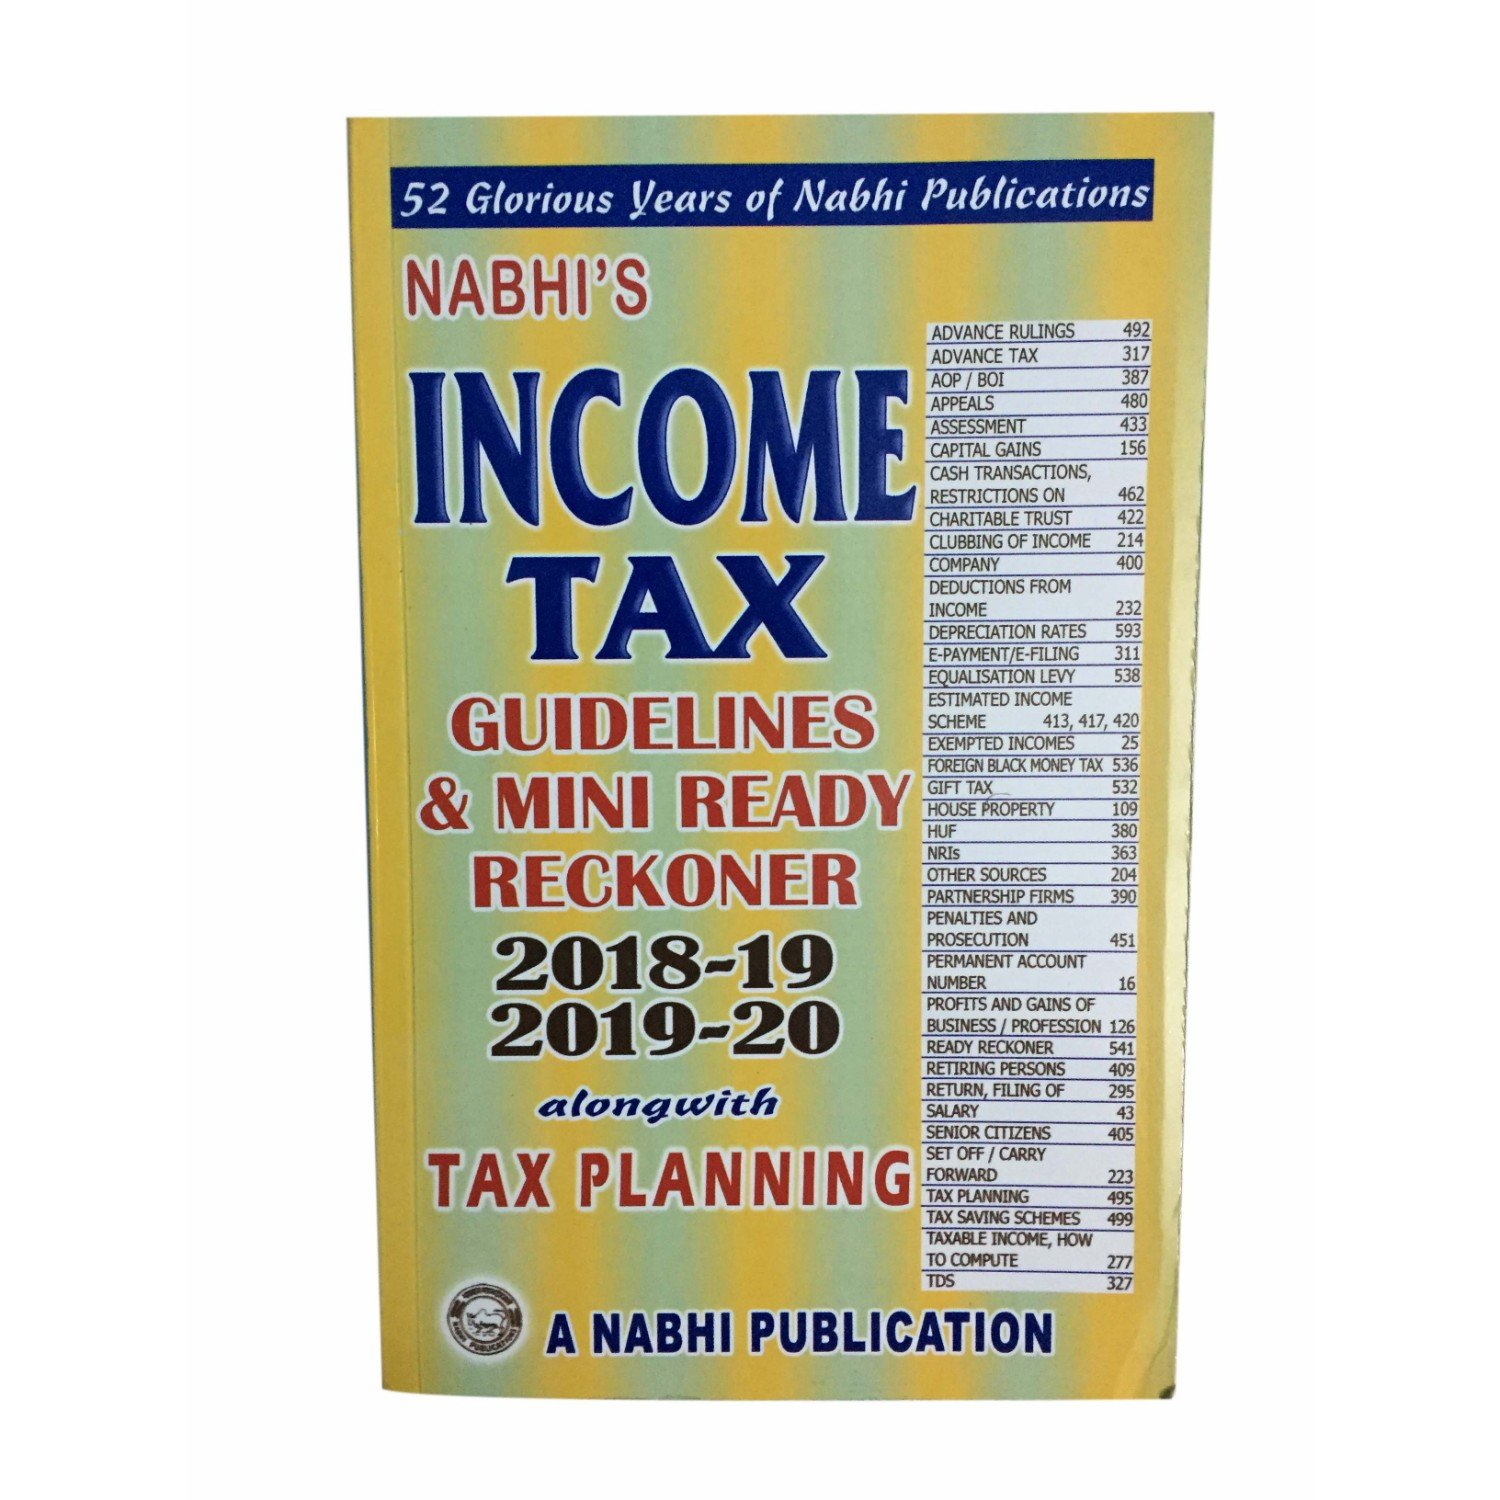 Nabhis Income Tax Guidelines Mini Ready Reckoner 2018 19 2019 20 Along With Planning Paperback